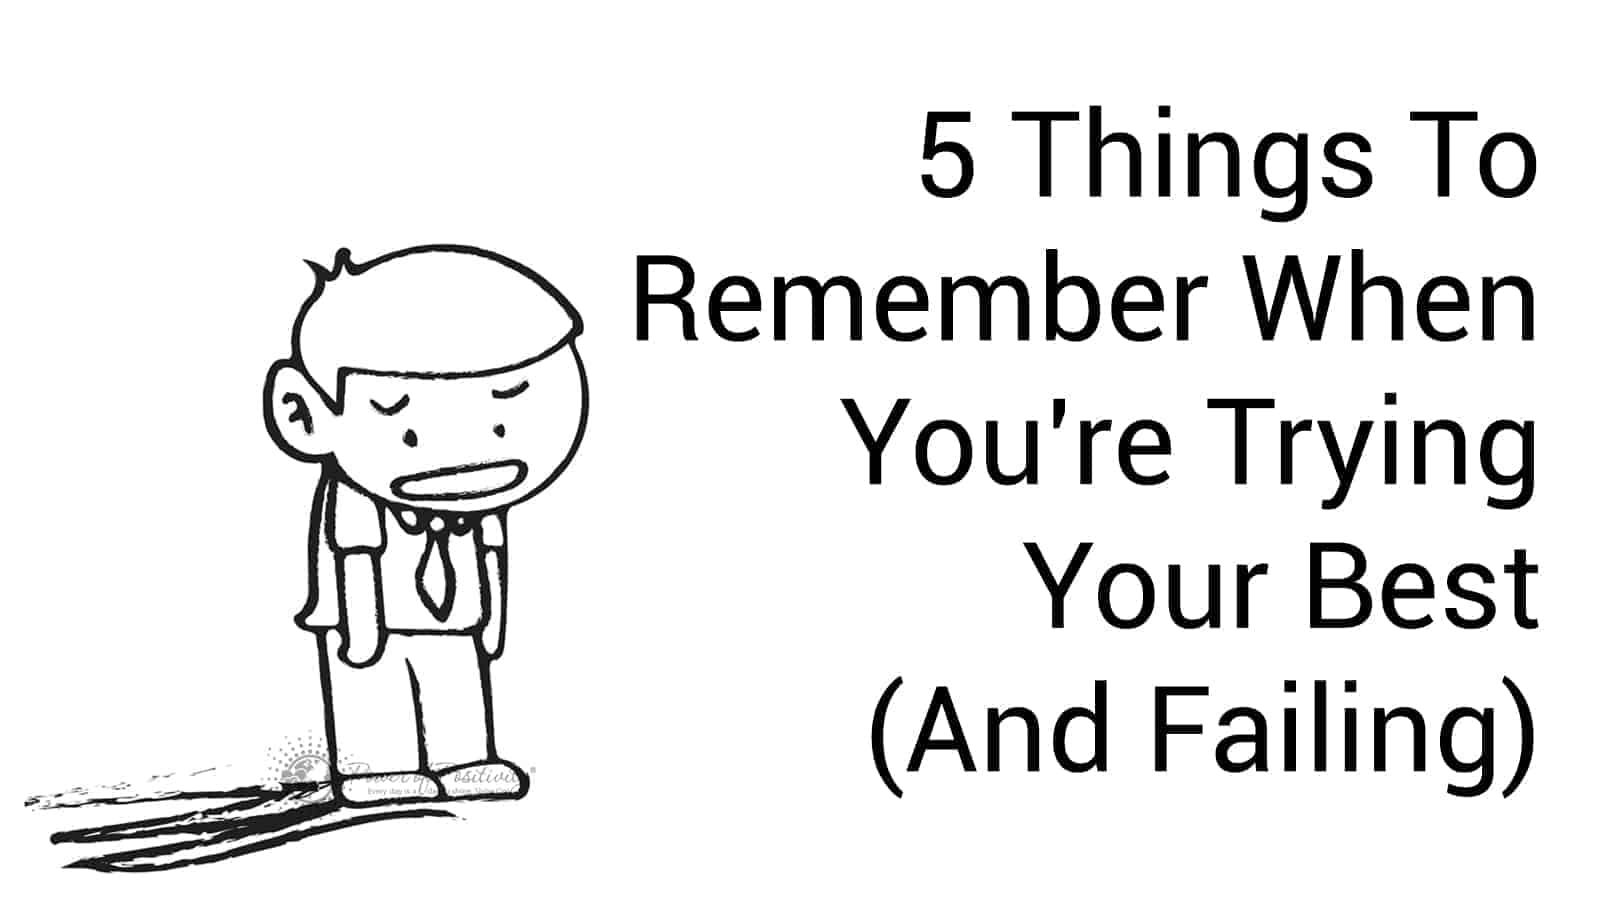 5 Things To Remember When You're Trying Your Best (And